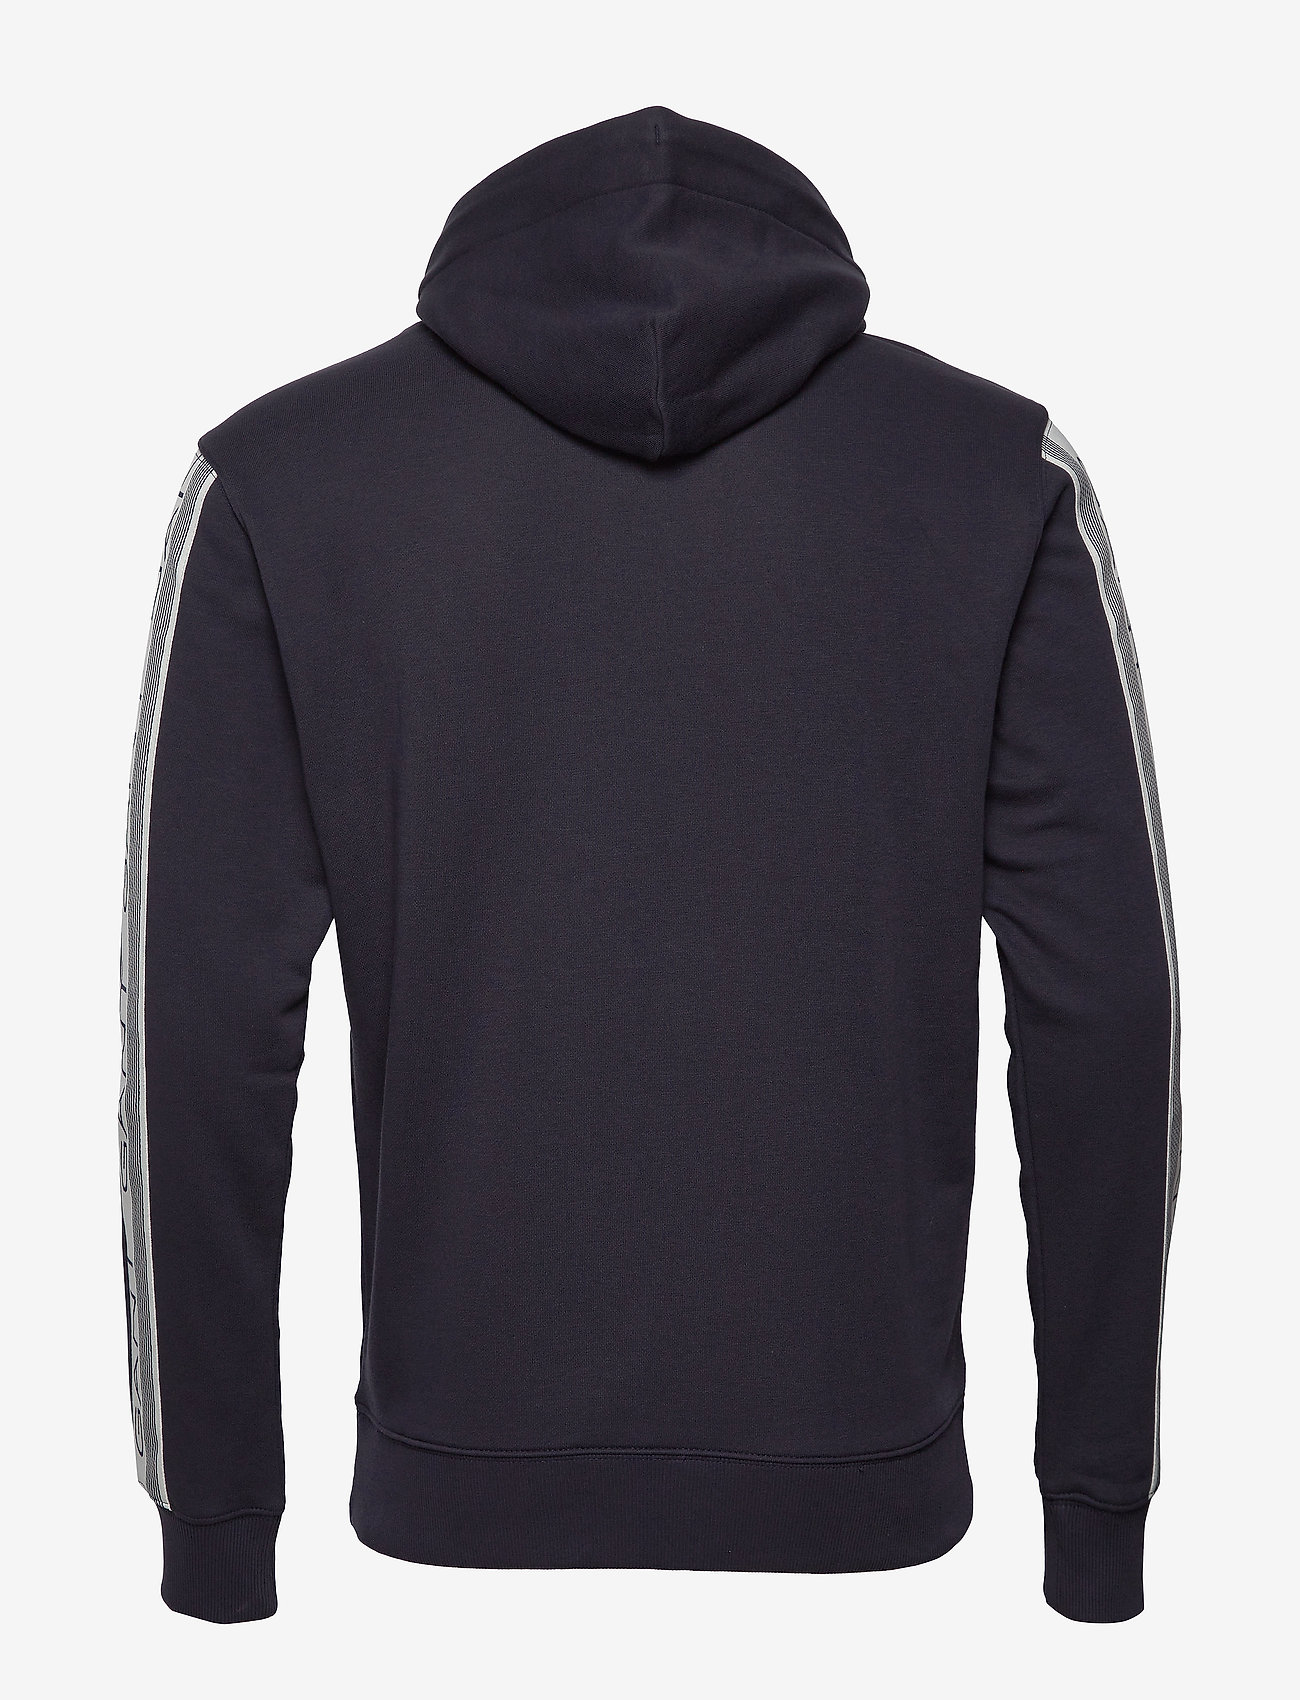 GANT - D1. 13 STRIPES SWEAT HOODIE - basic sweatshirts - evening blue - 1